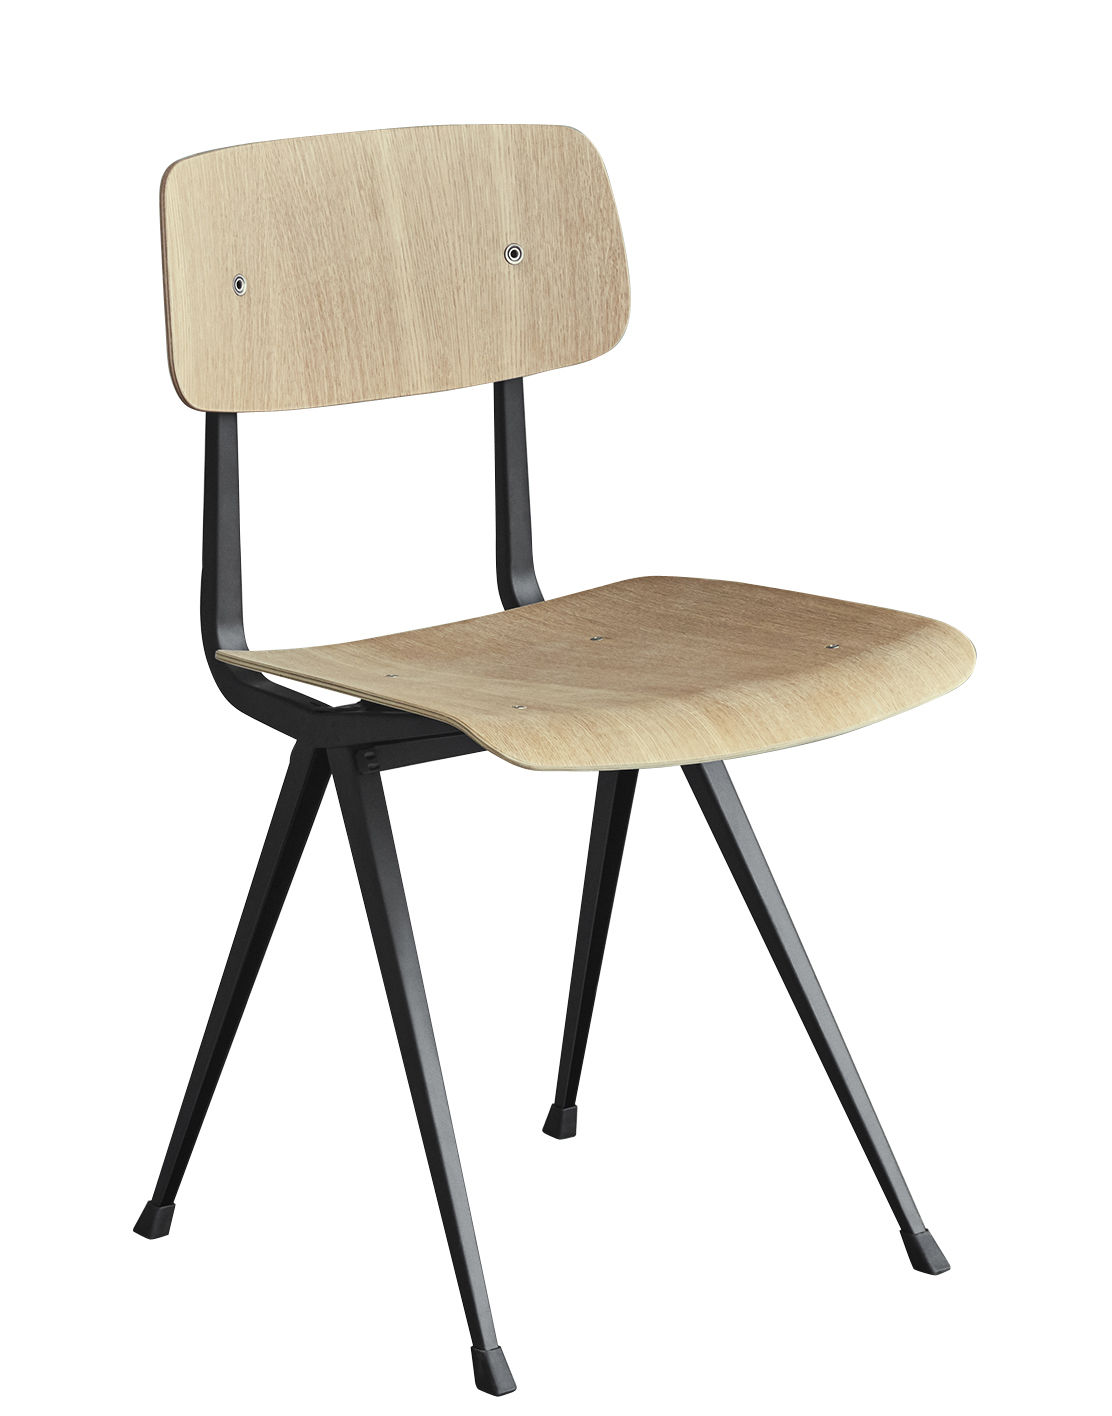 Furniture - Chairs - Result Chair - / 1958 reissue by Hay - Light oak / Black feet - Lacquered steel, Oak plywood